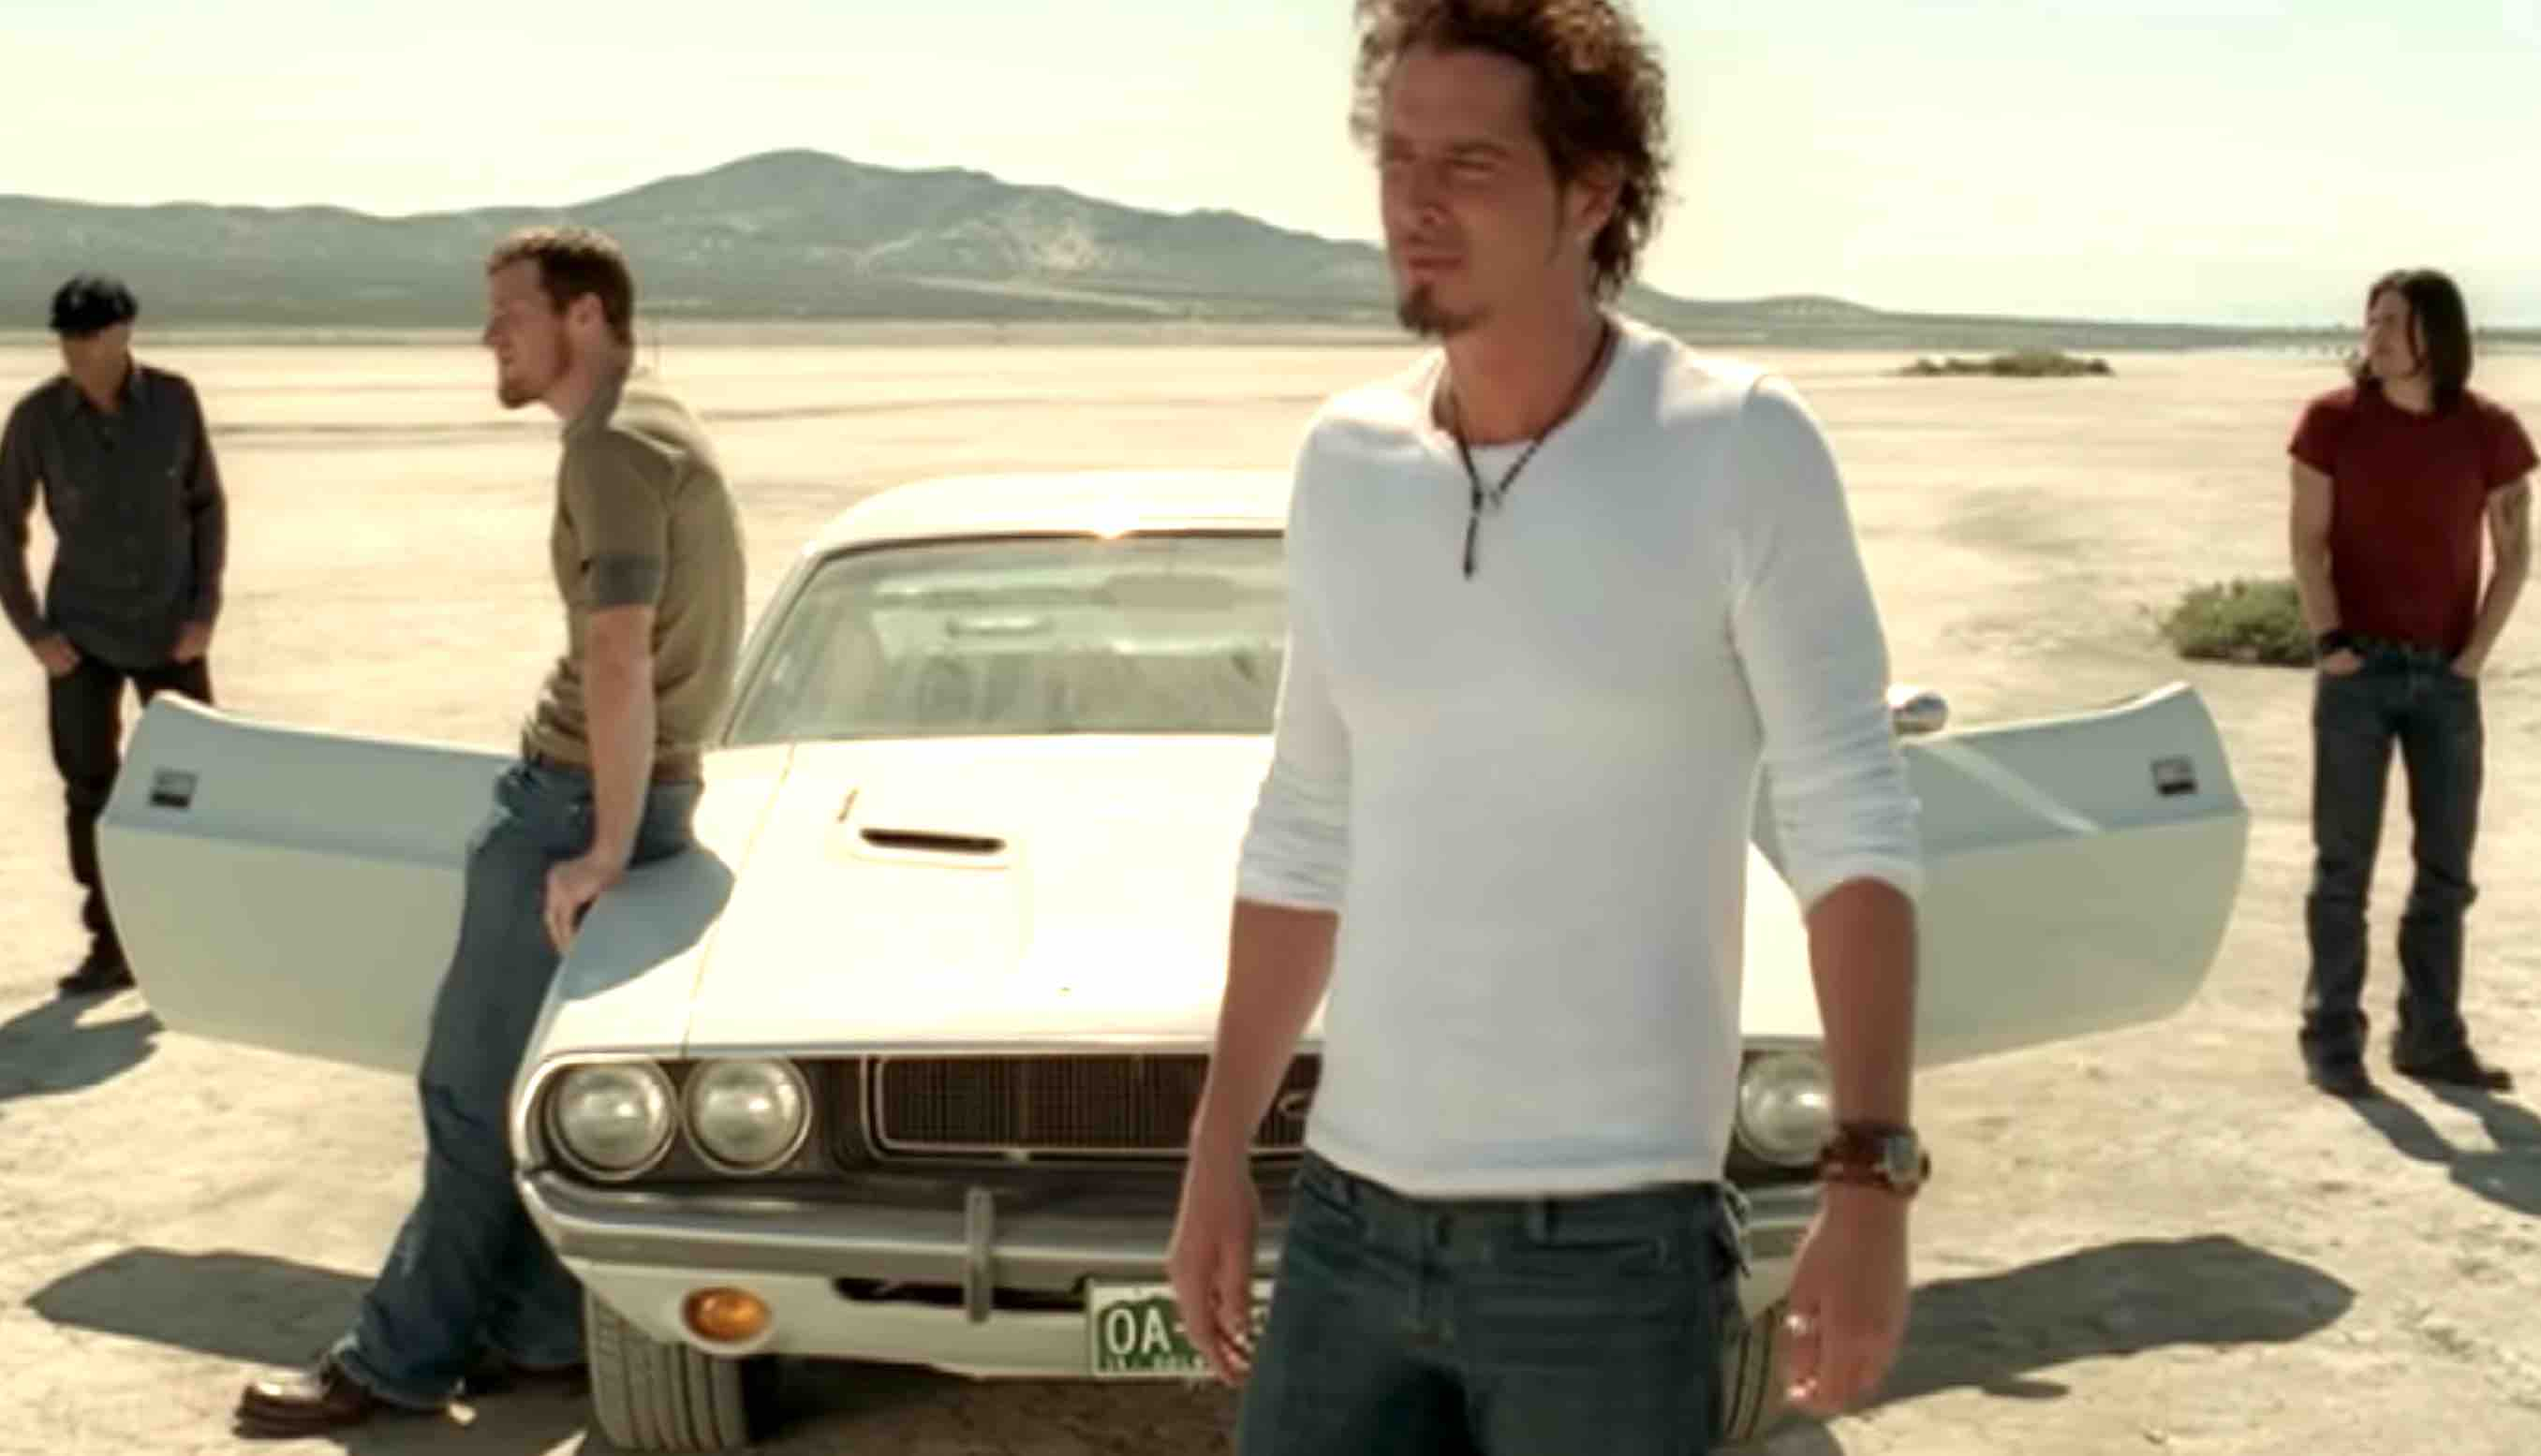 Audioslave Reveal First Look At Reunion, Who Will Sing For Chris Cornell?